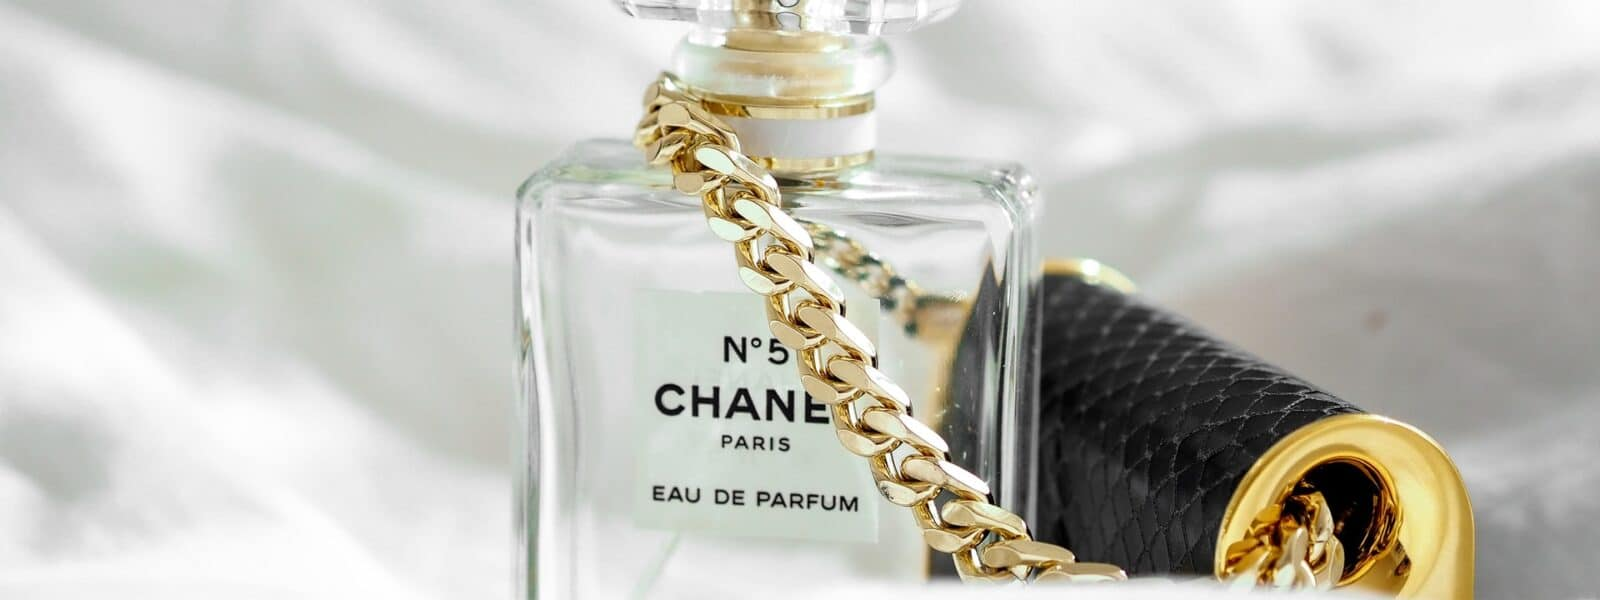 7 iconic perfumes every woman needs